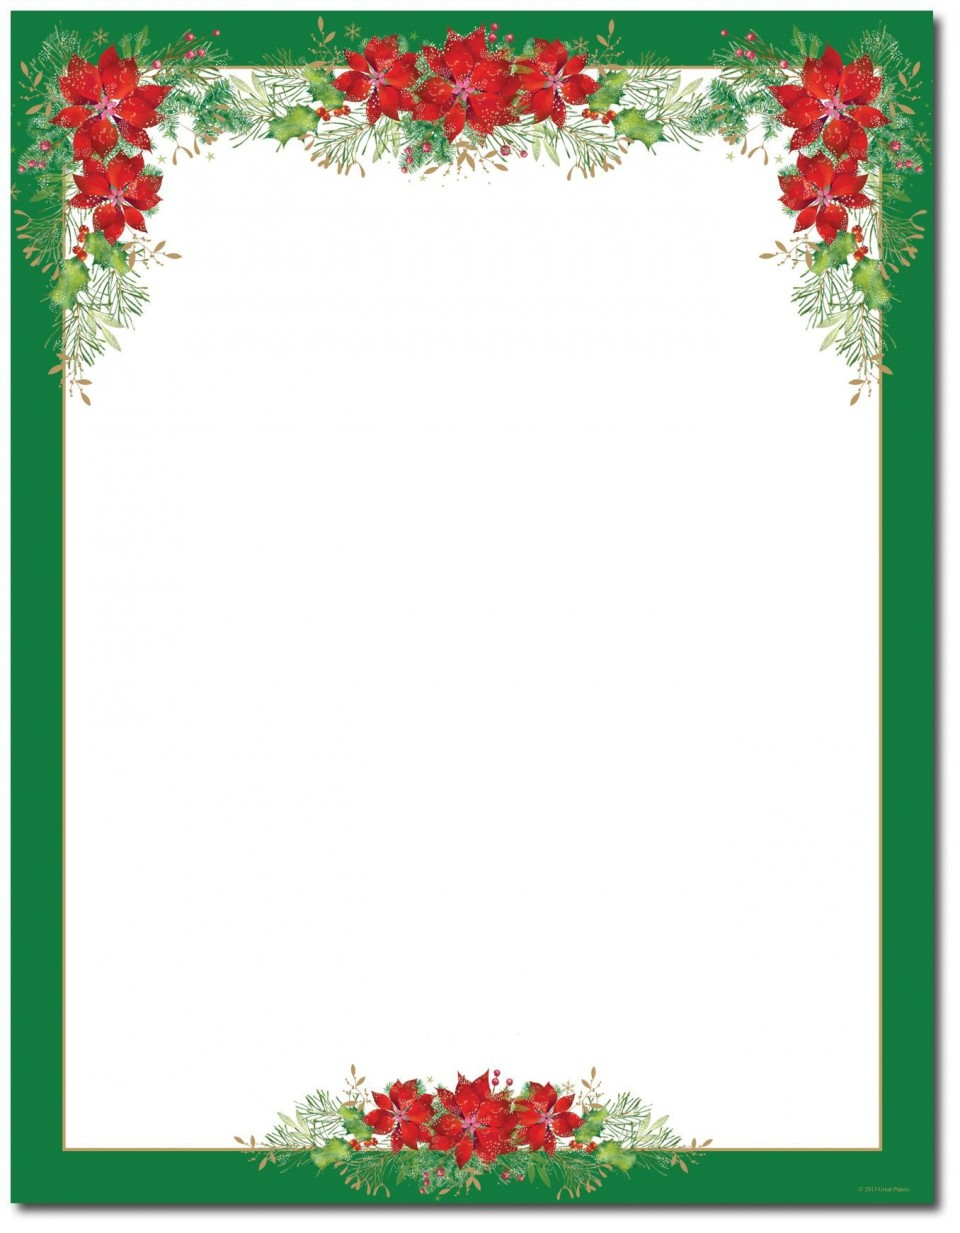 002 Imposing Christma Stationery Template Word Free Design  Religiou For Downloadable960